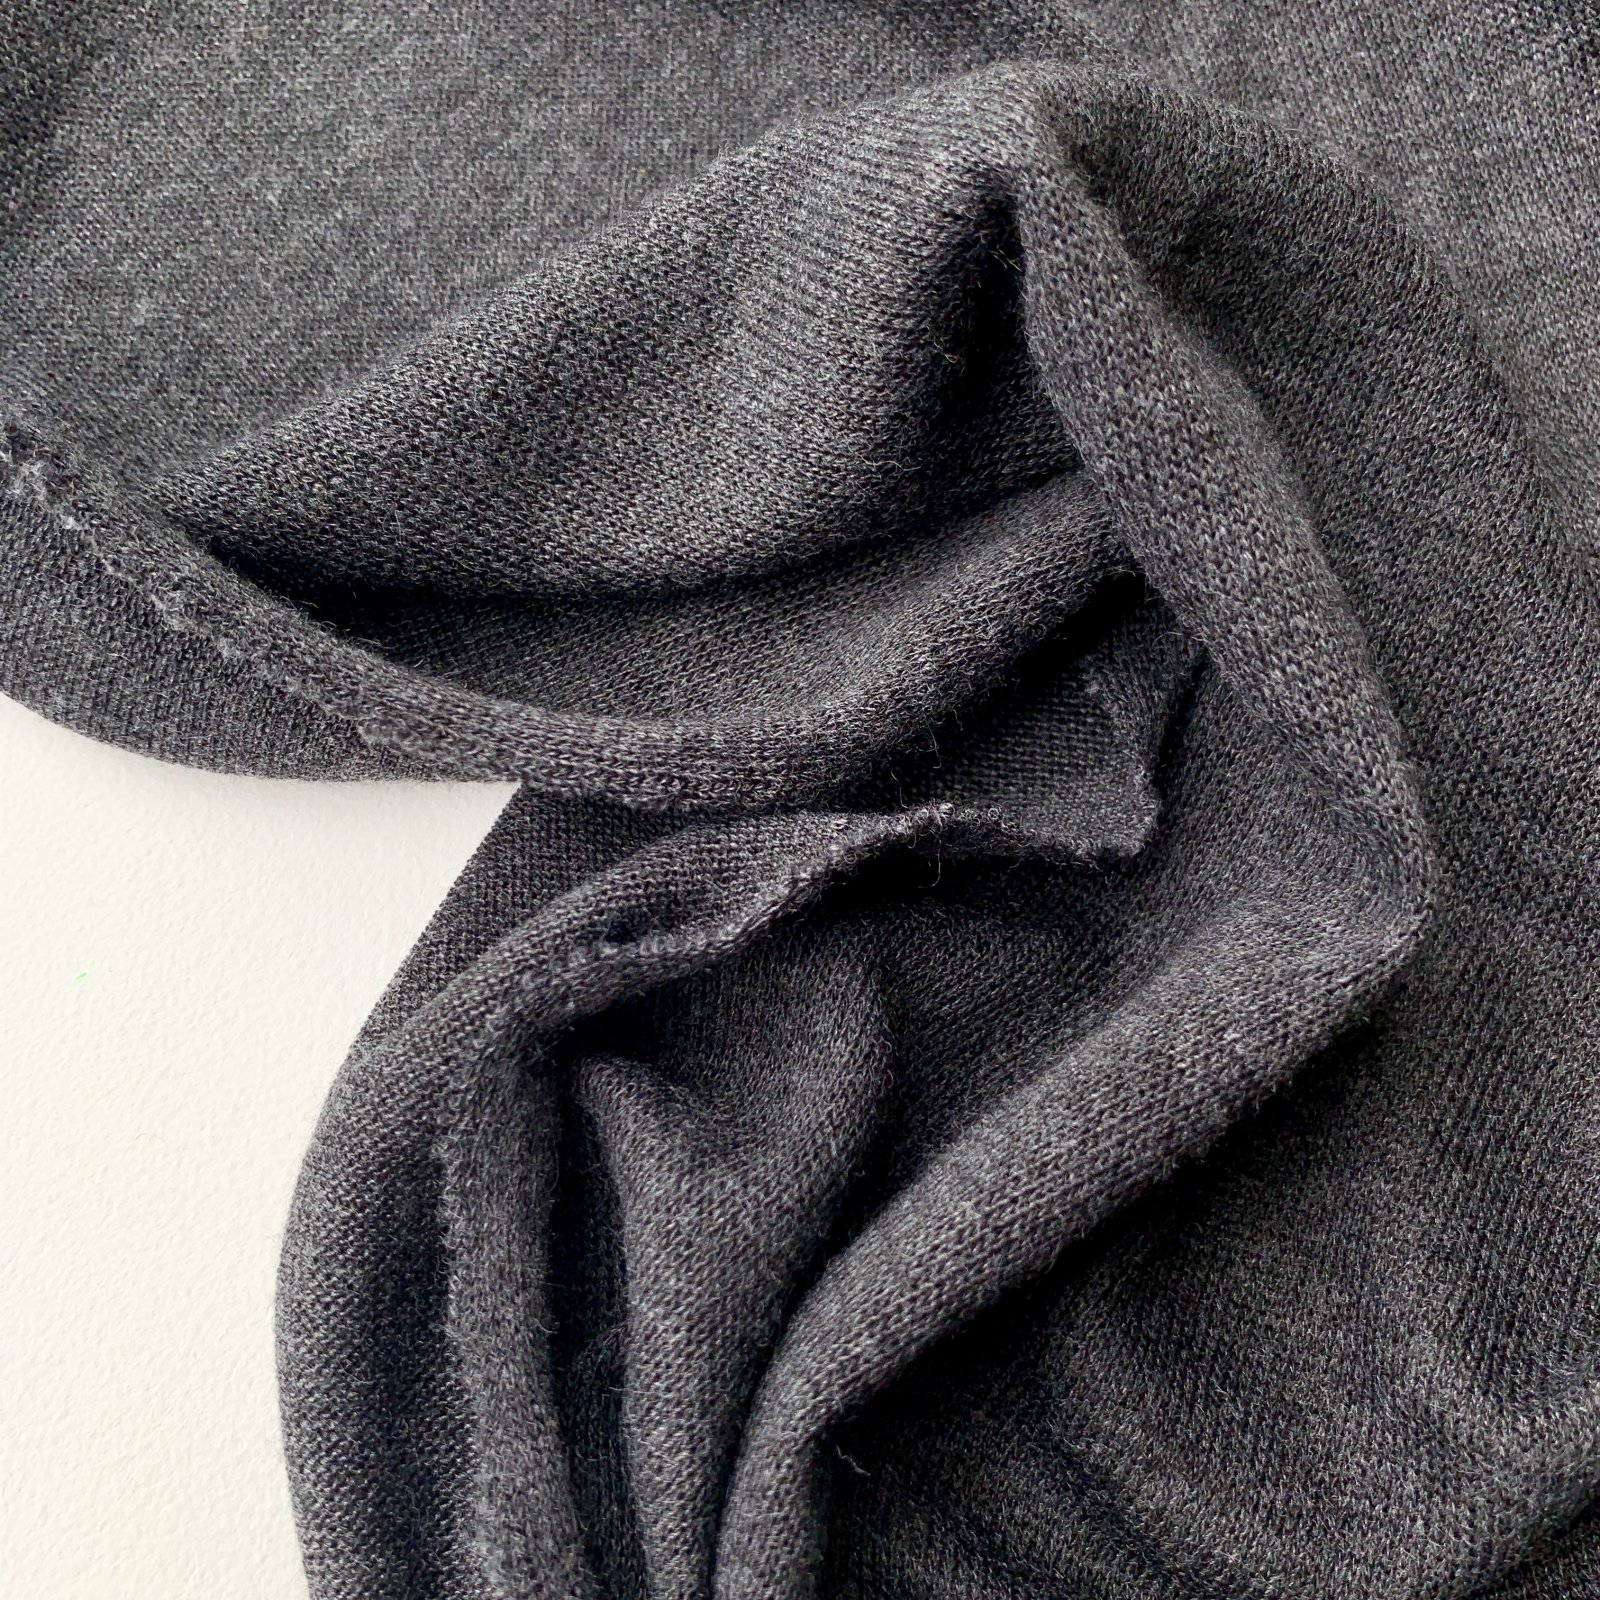 Deadstock Wool Blend Lightweight Sweater Knit - Heathered Charcoal 54